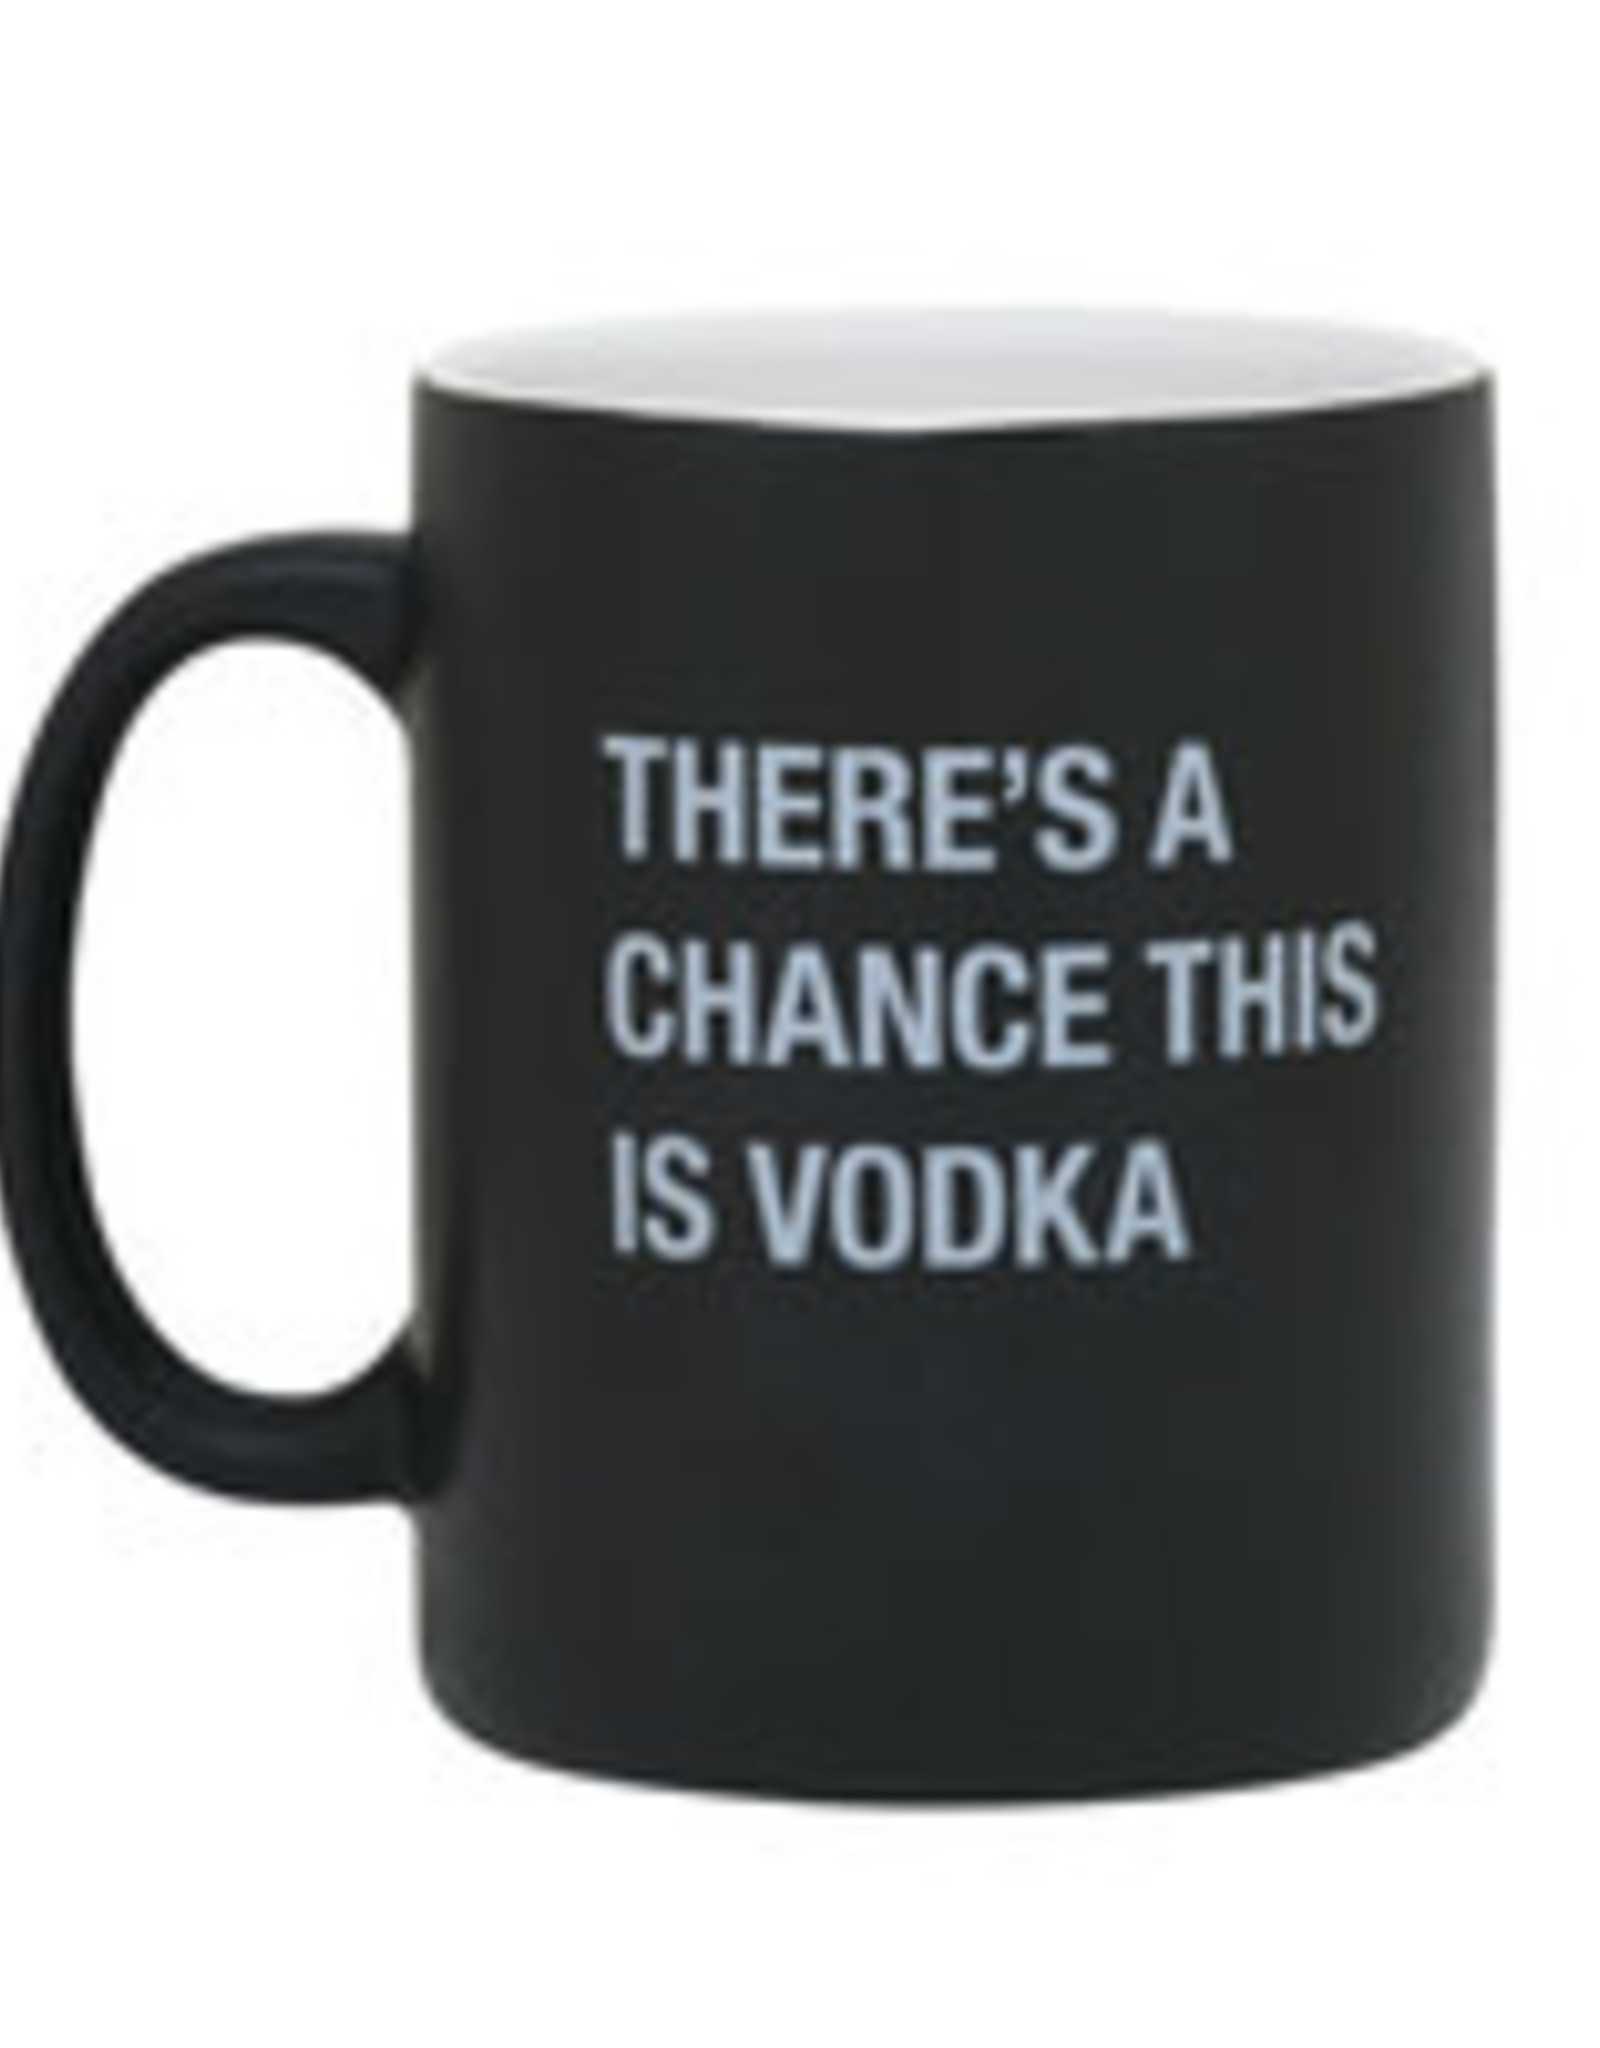 Mug - There's A Chance This Is Vodka